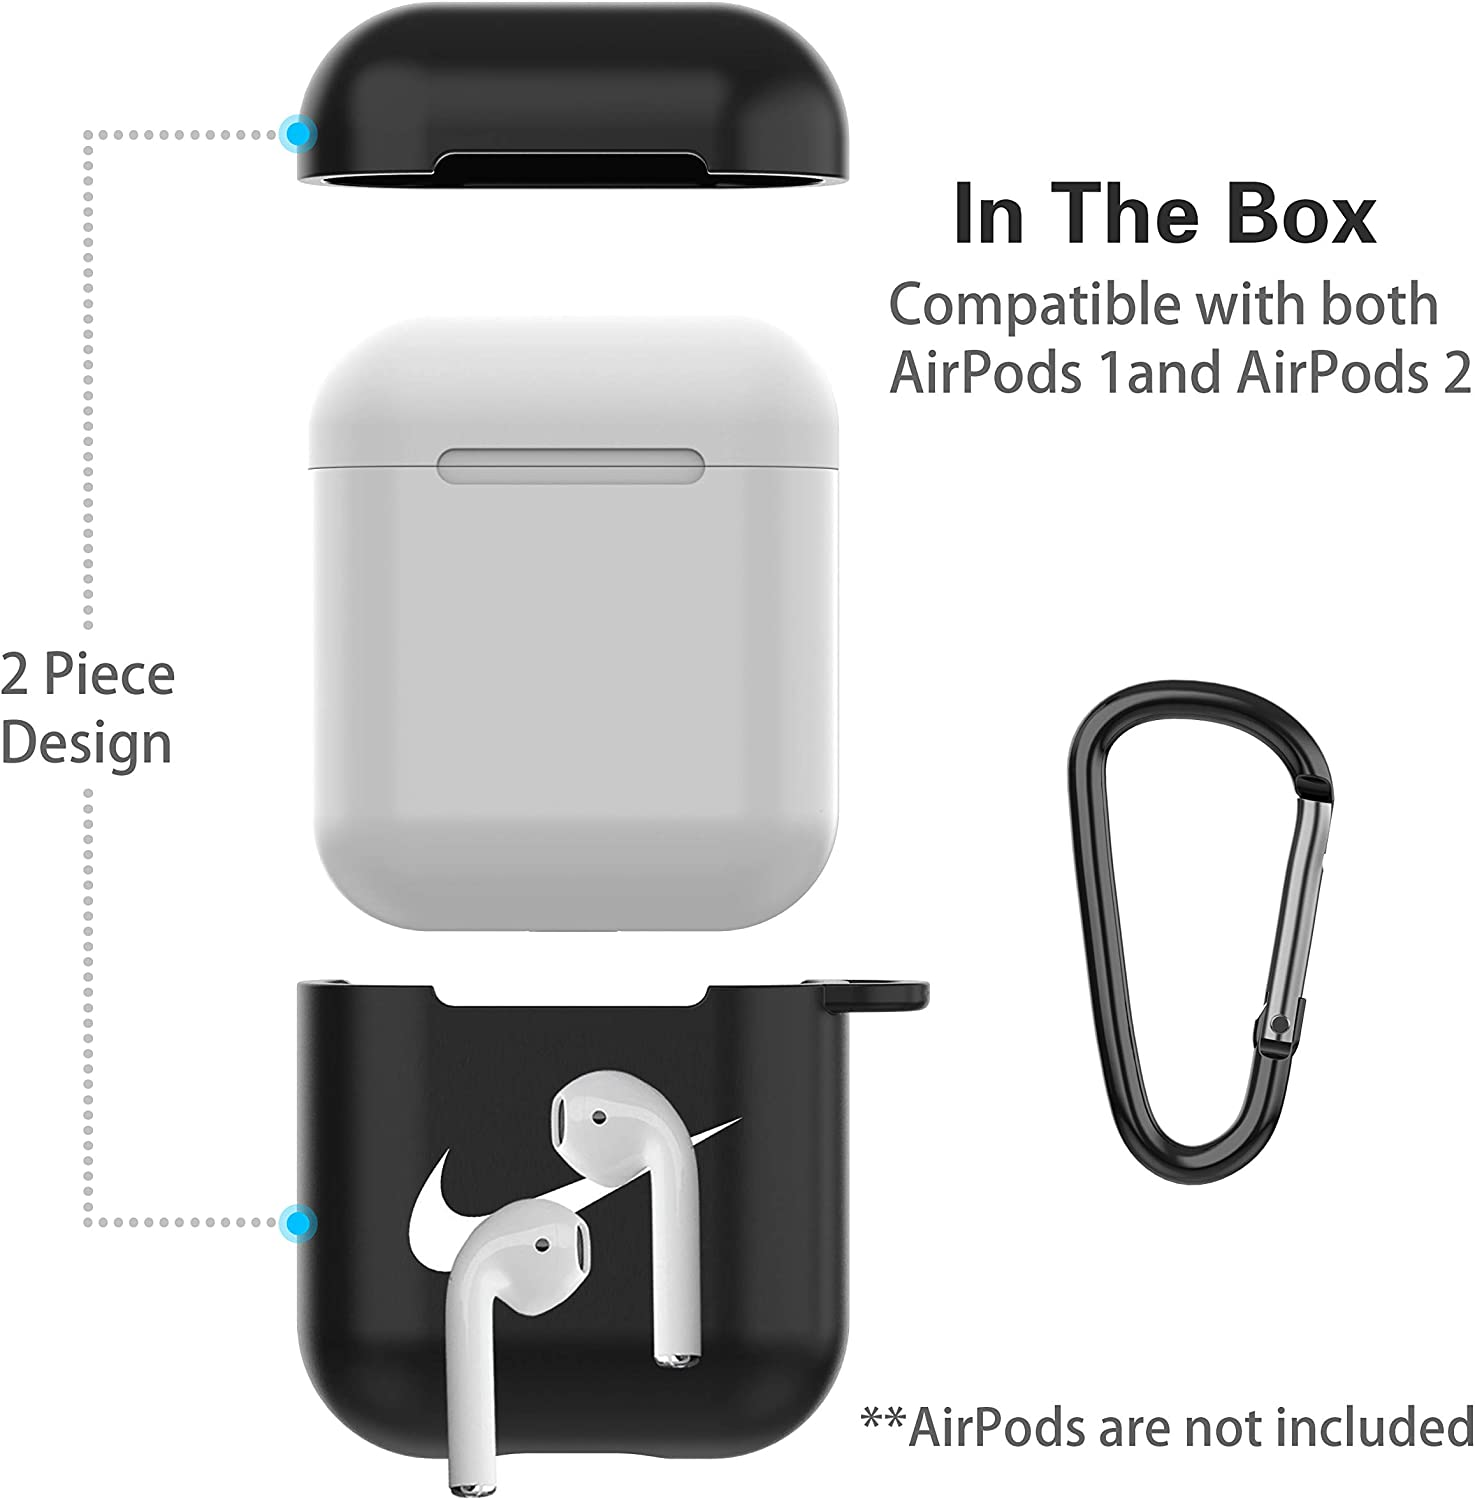 AirPods Case for Airpods 2 /& Airpods 1,Earbuds Charging Case with Keychain Protective,TPU Cover Air Pods Accessories Black